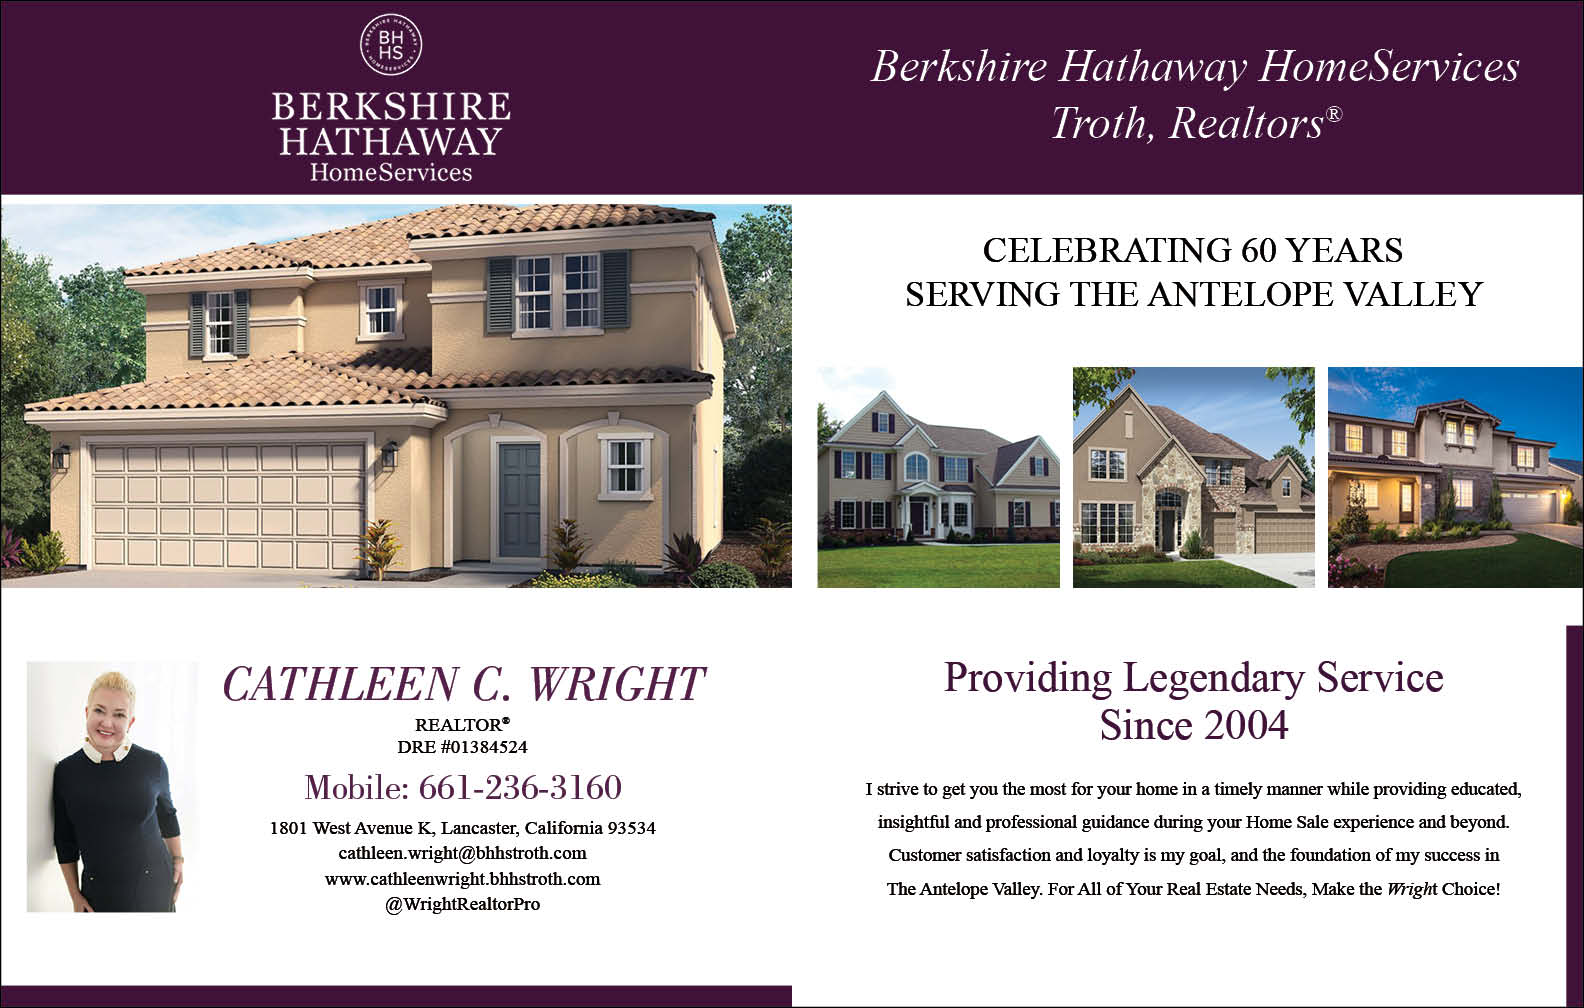 CATHLEEN C WRIGHT - BERKSHIRE HATHAWAY